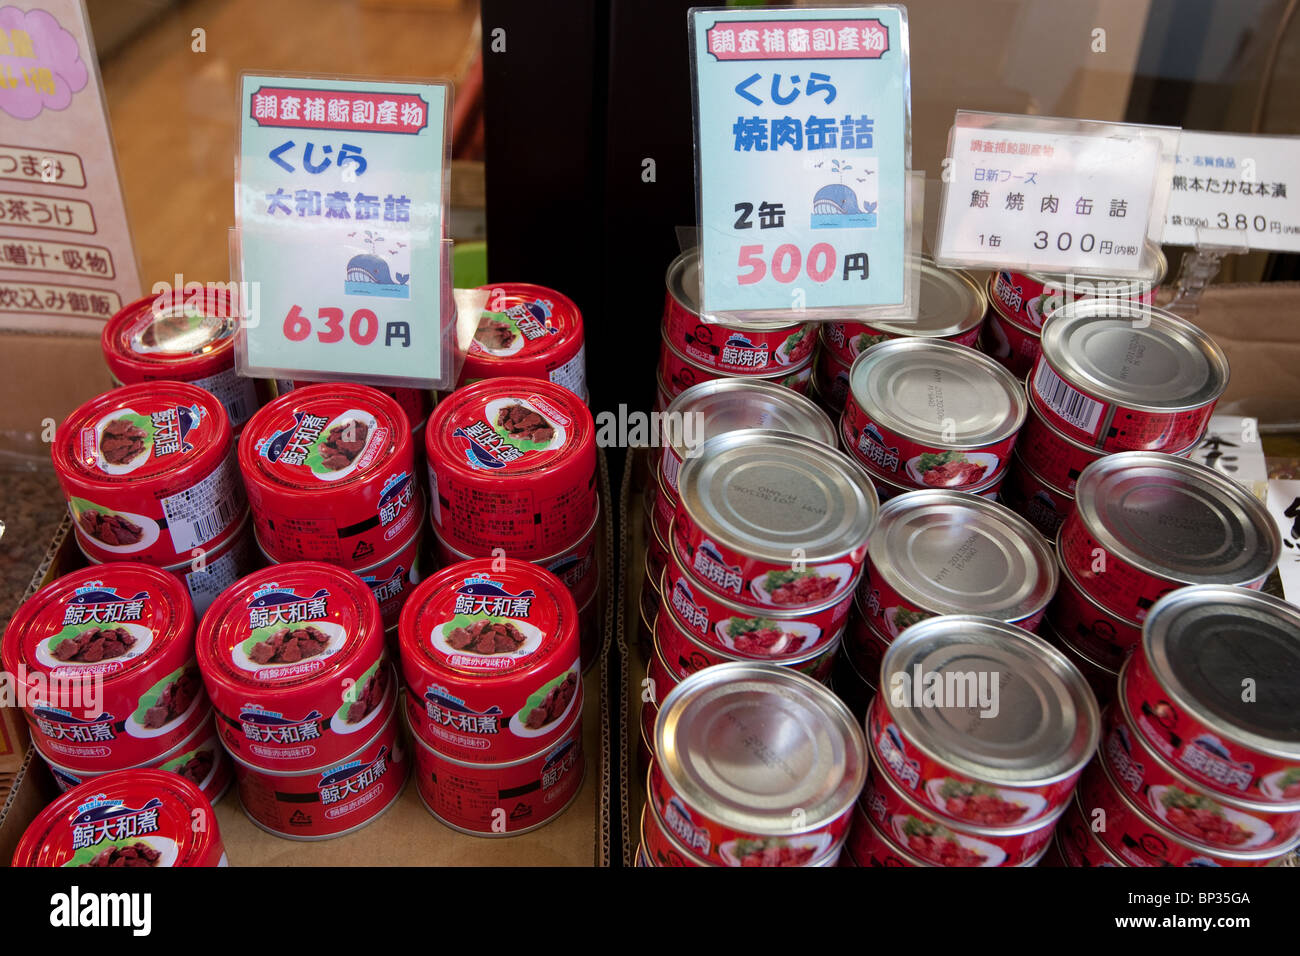 Cans of whale meat for sale for approximately 7 USD in a shopping street in Sugamo district of Tokyo, Japan, Wednesday - Stock Image